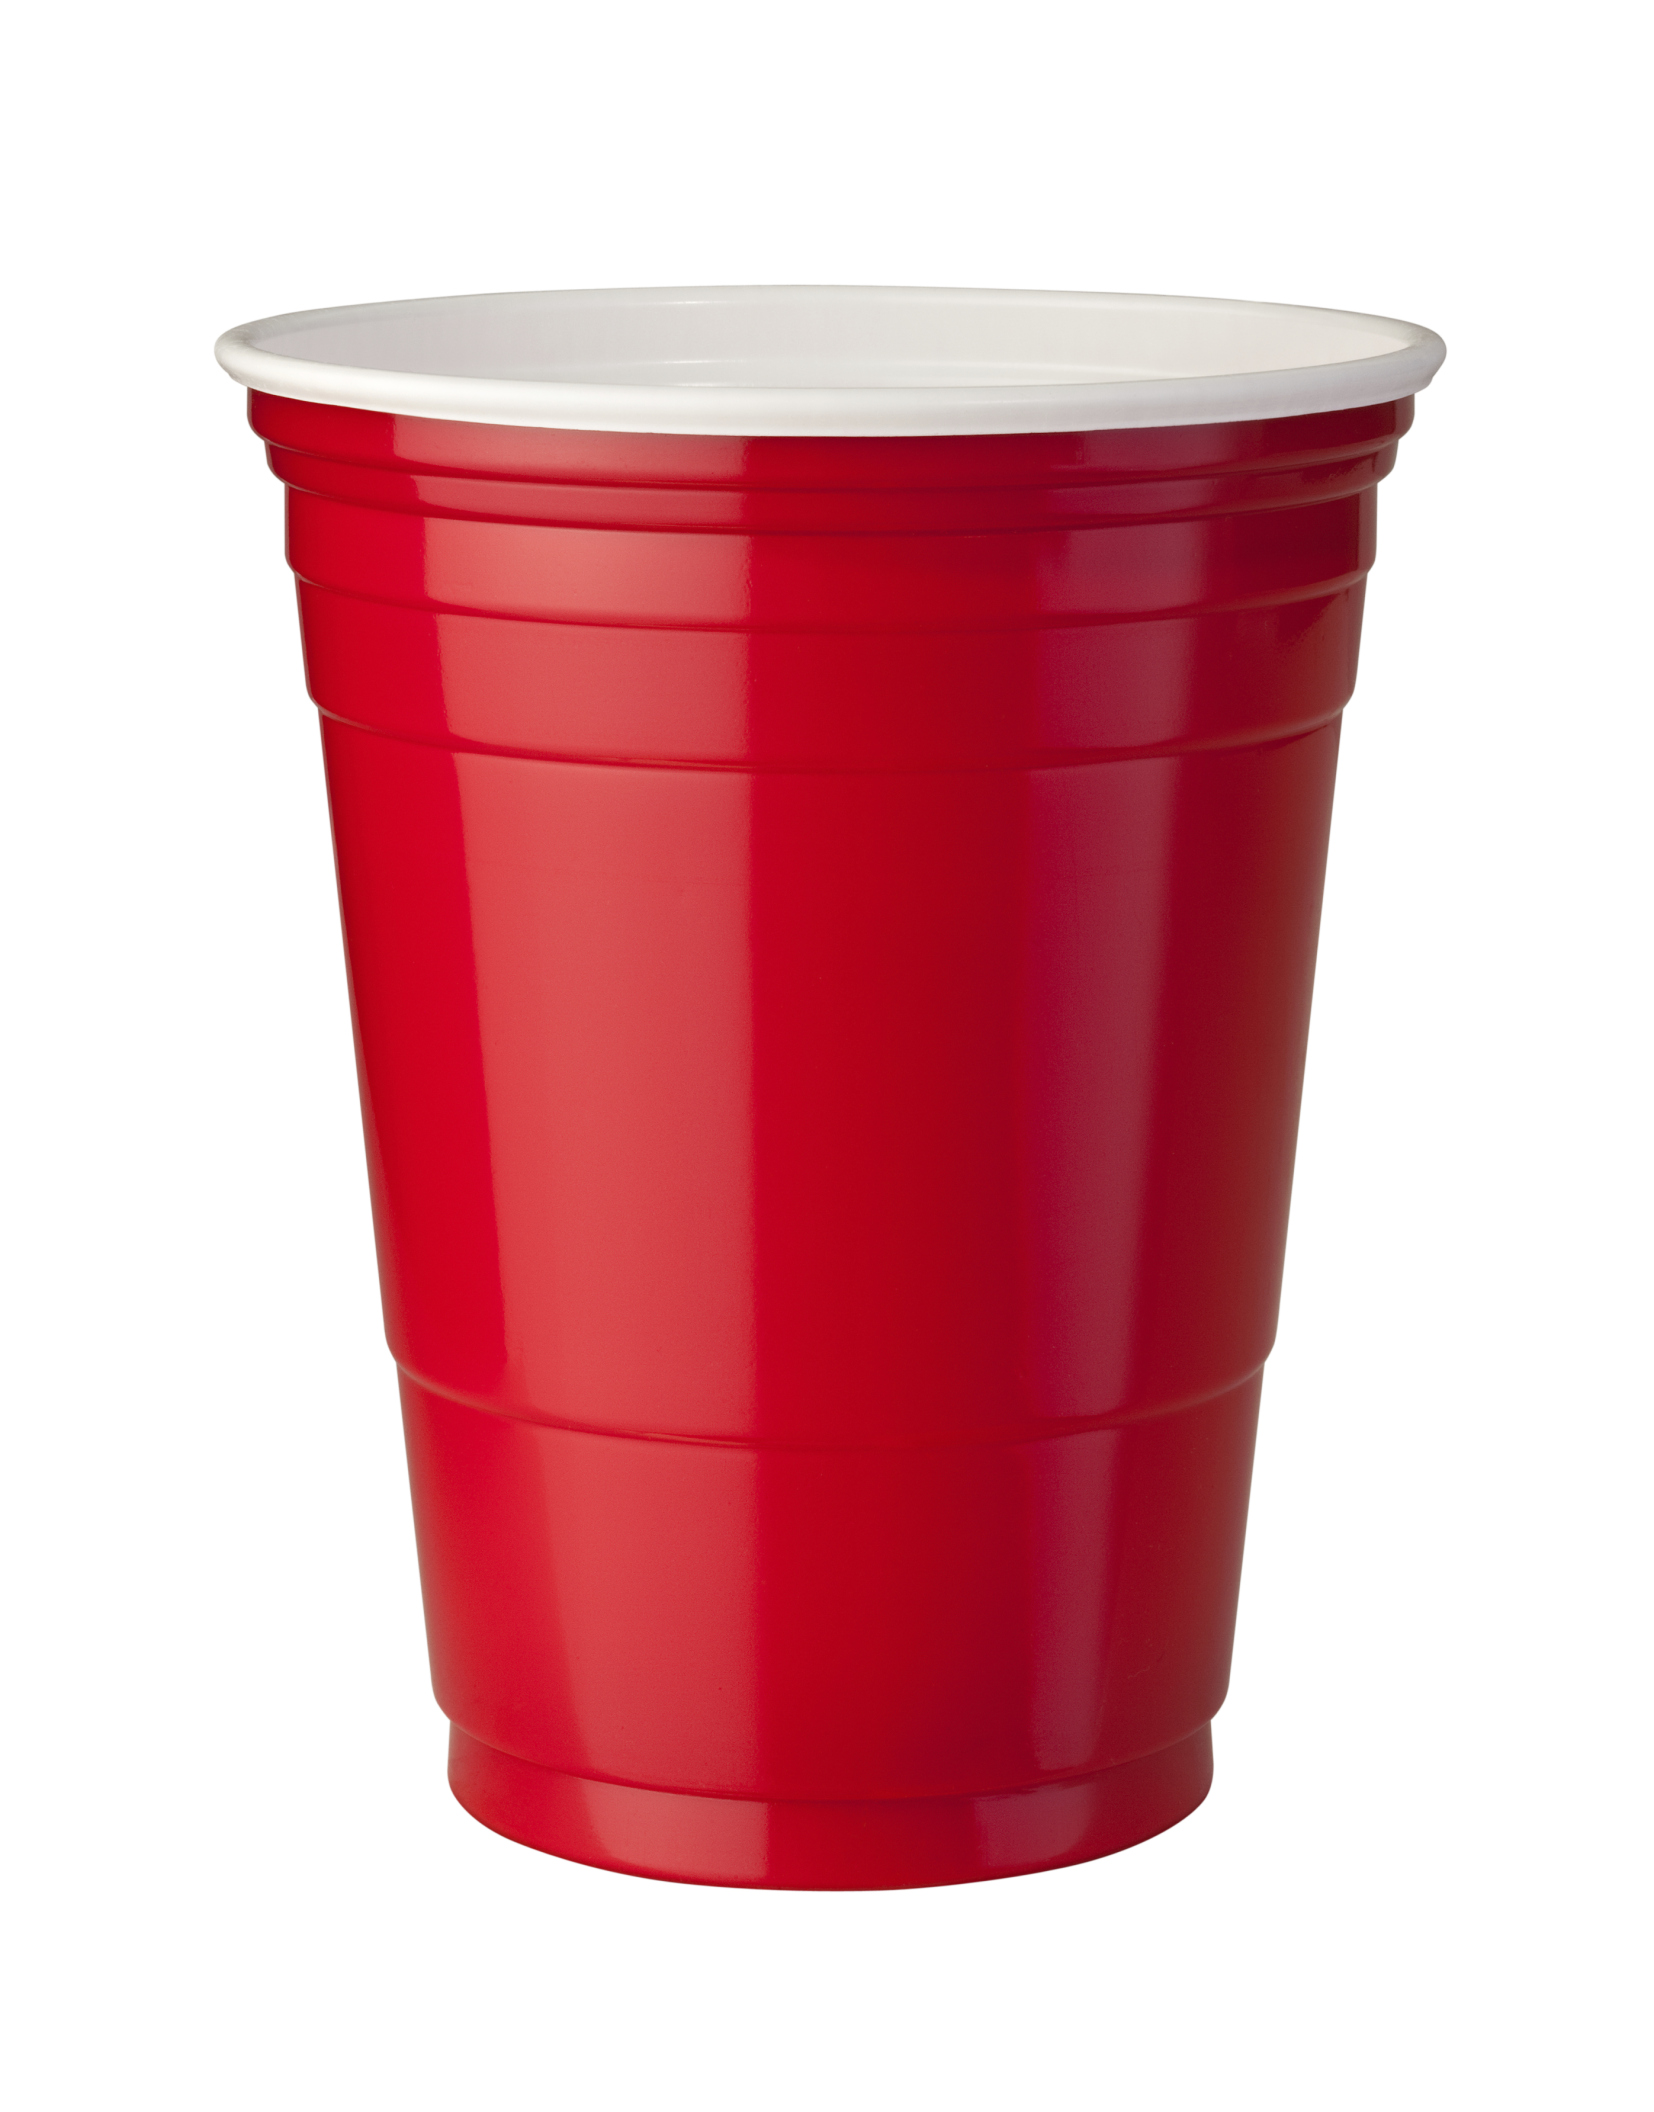 Toby Keith - Red Solo Cup Lyrics